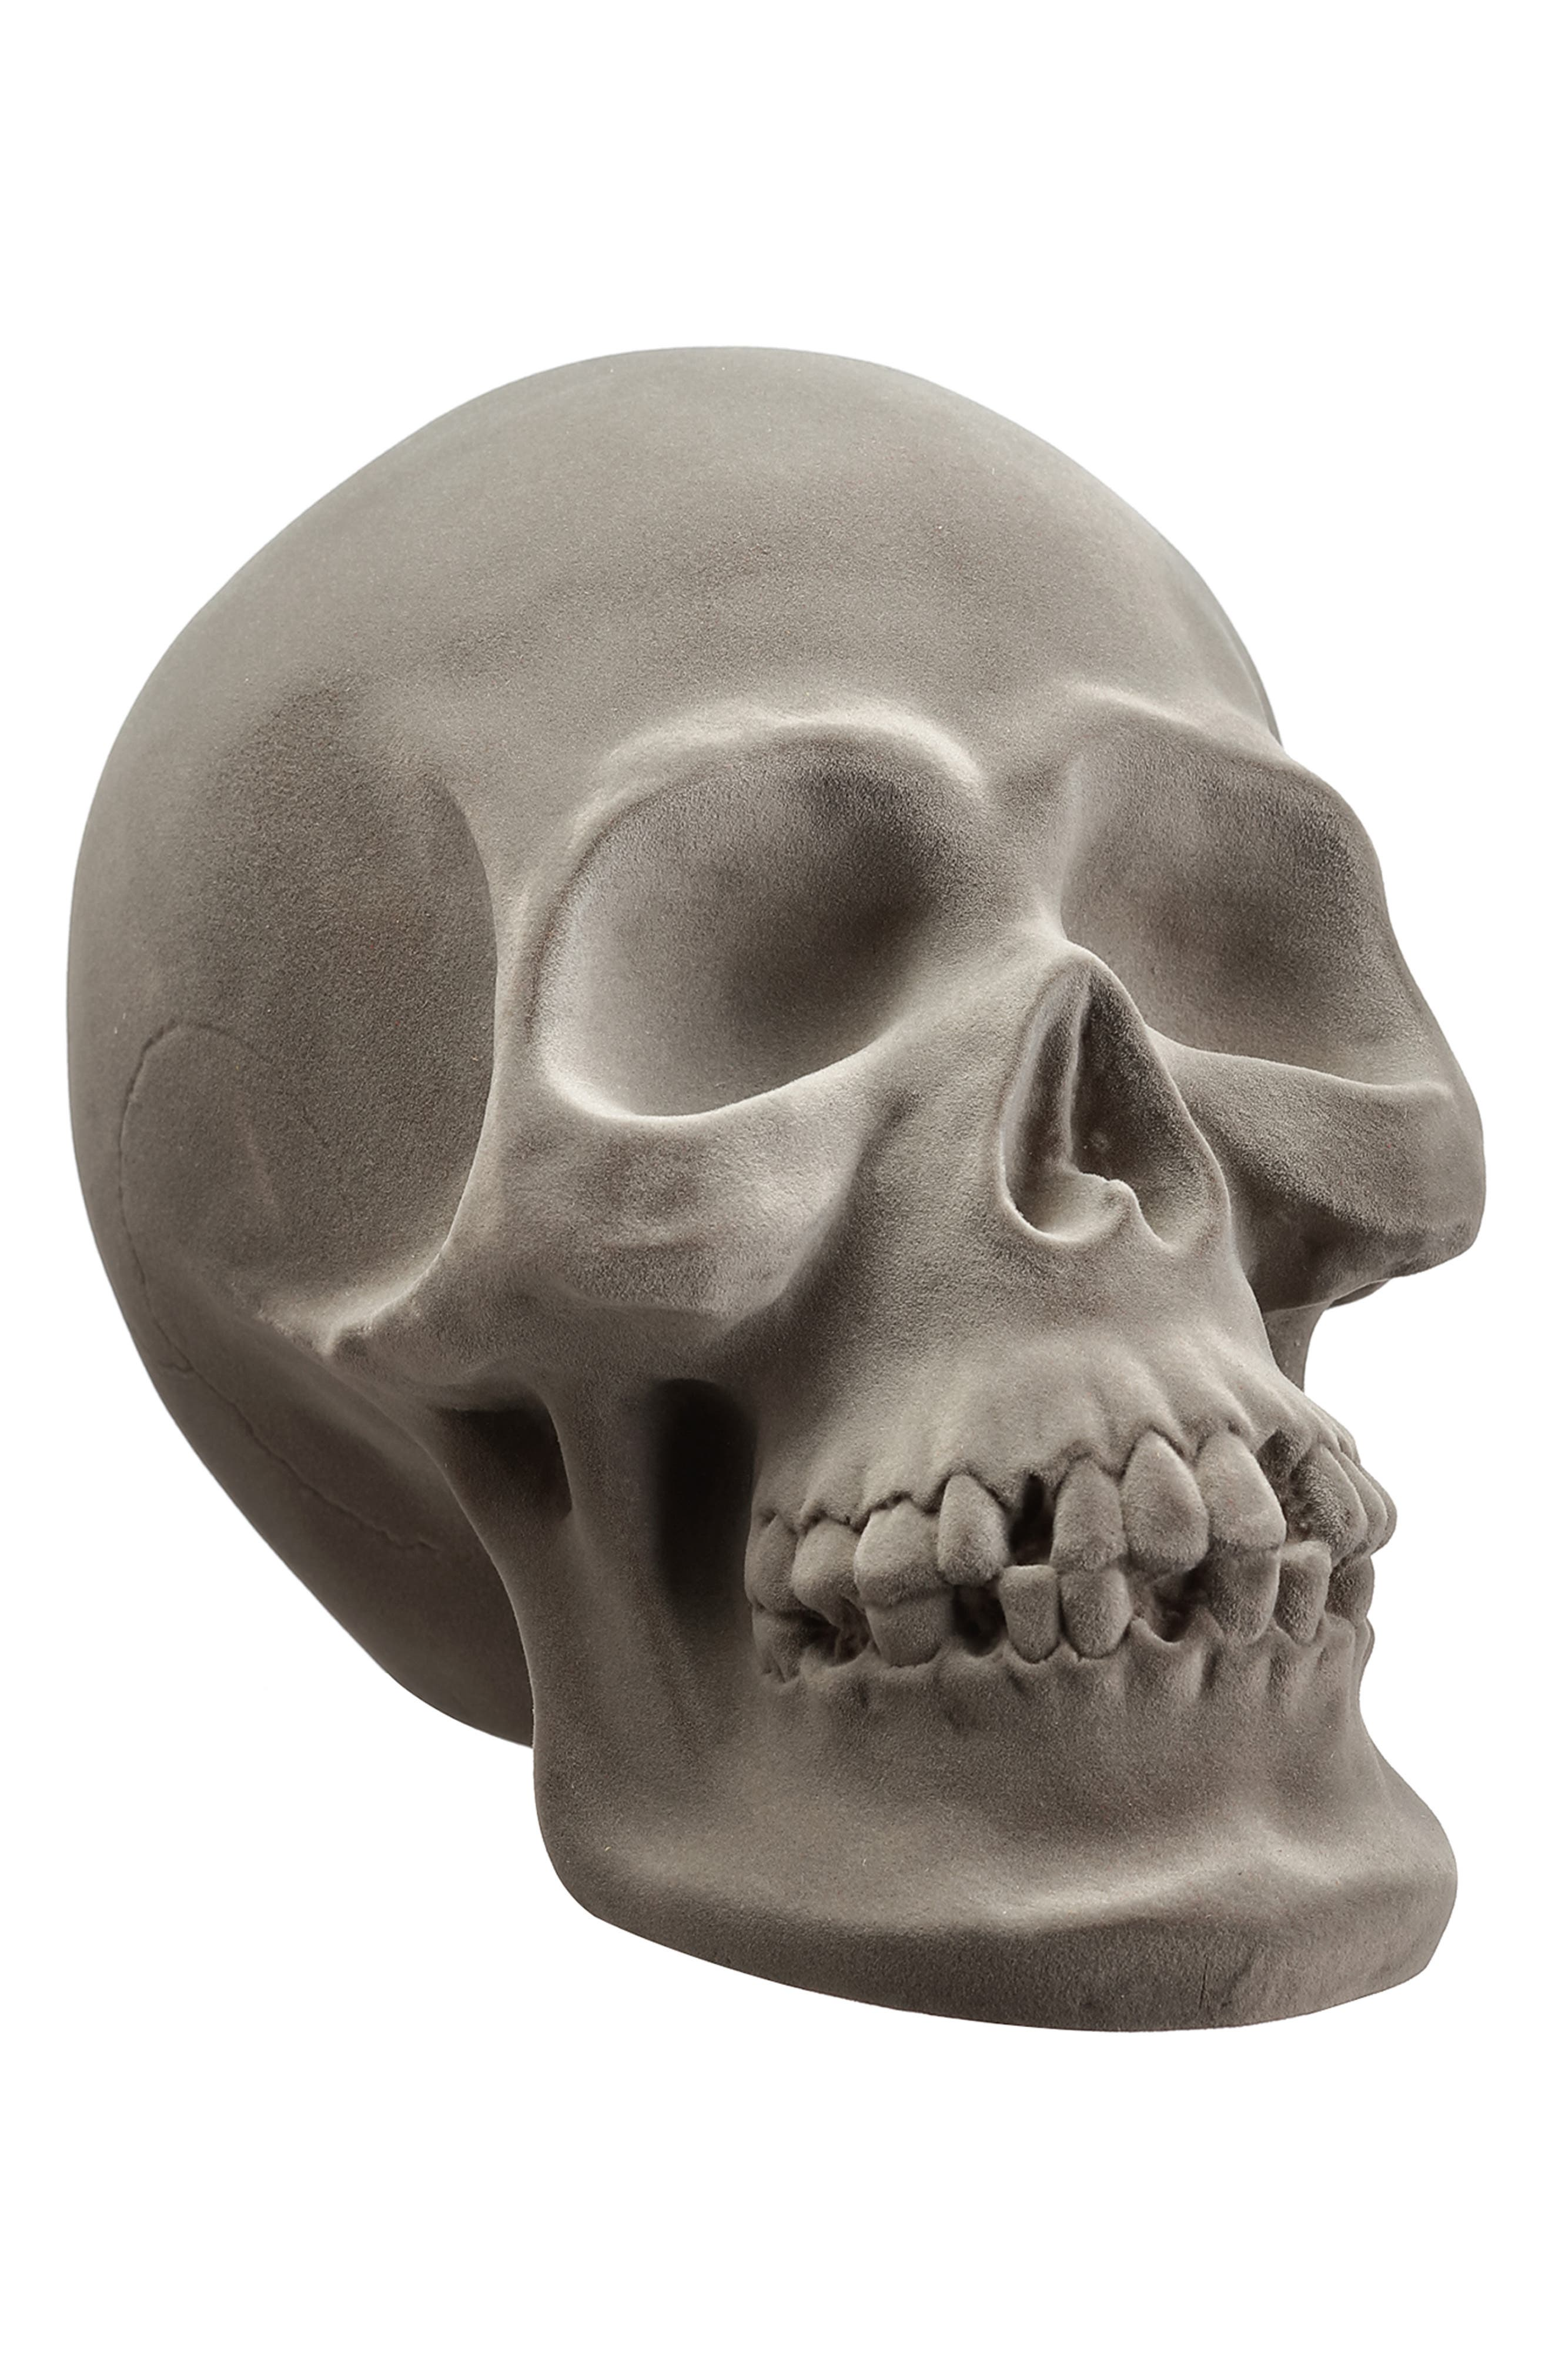 Soft flocking gives a matte, velvety sheen to this decorative skull complete with a few missing teeth and cracks along the back for a realistic, spooky look. Style Name: Allstate Decorative Skull. Style Number: 6082309. Available in stores.